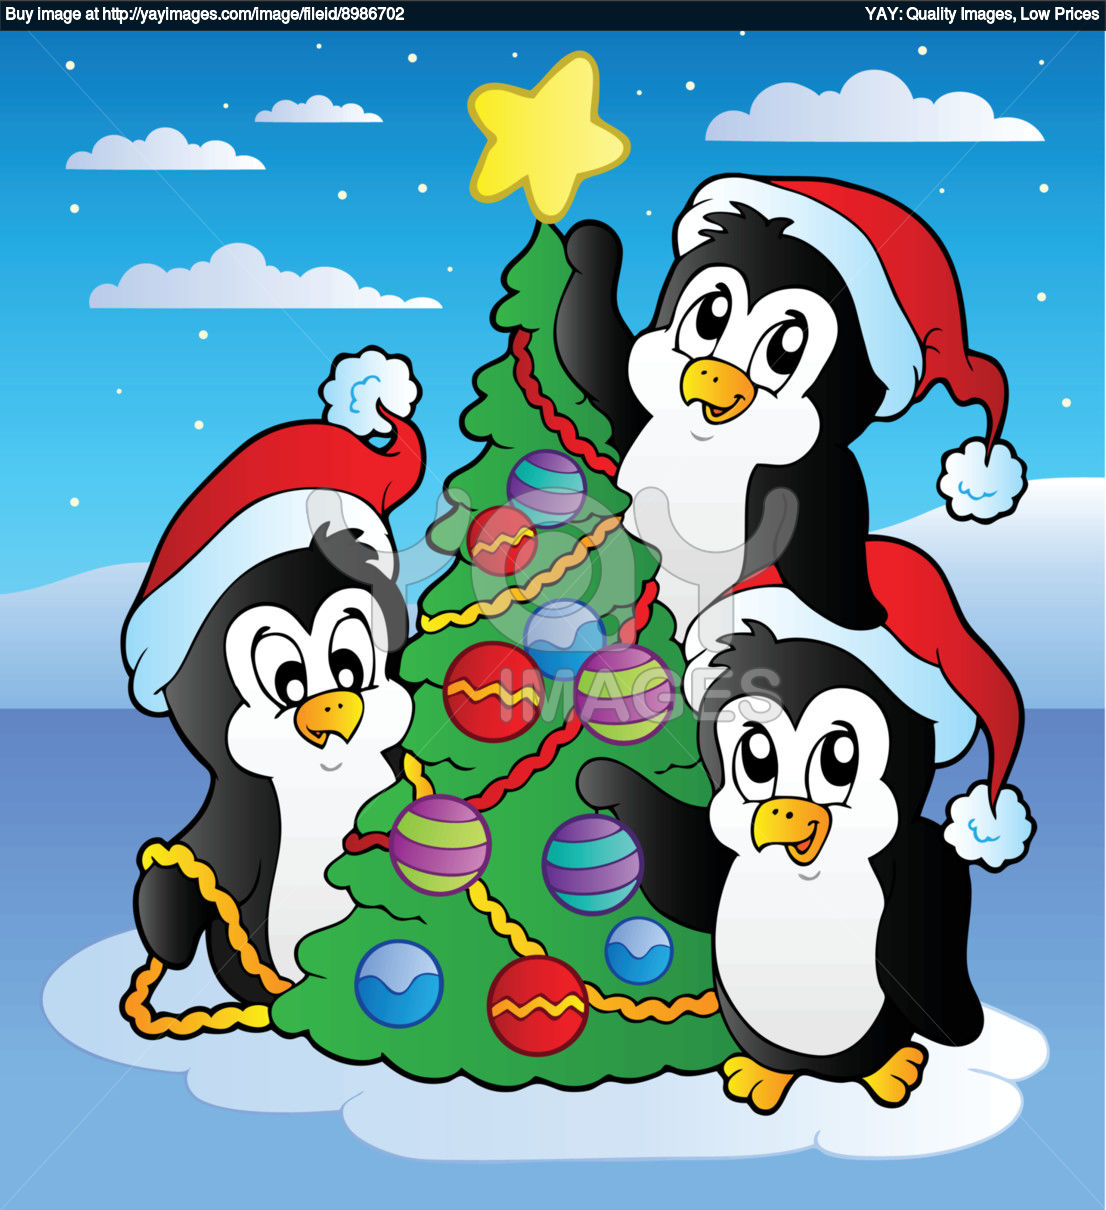 Christmas Penguin Wallpaper - WallpaperSafari